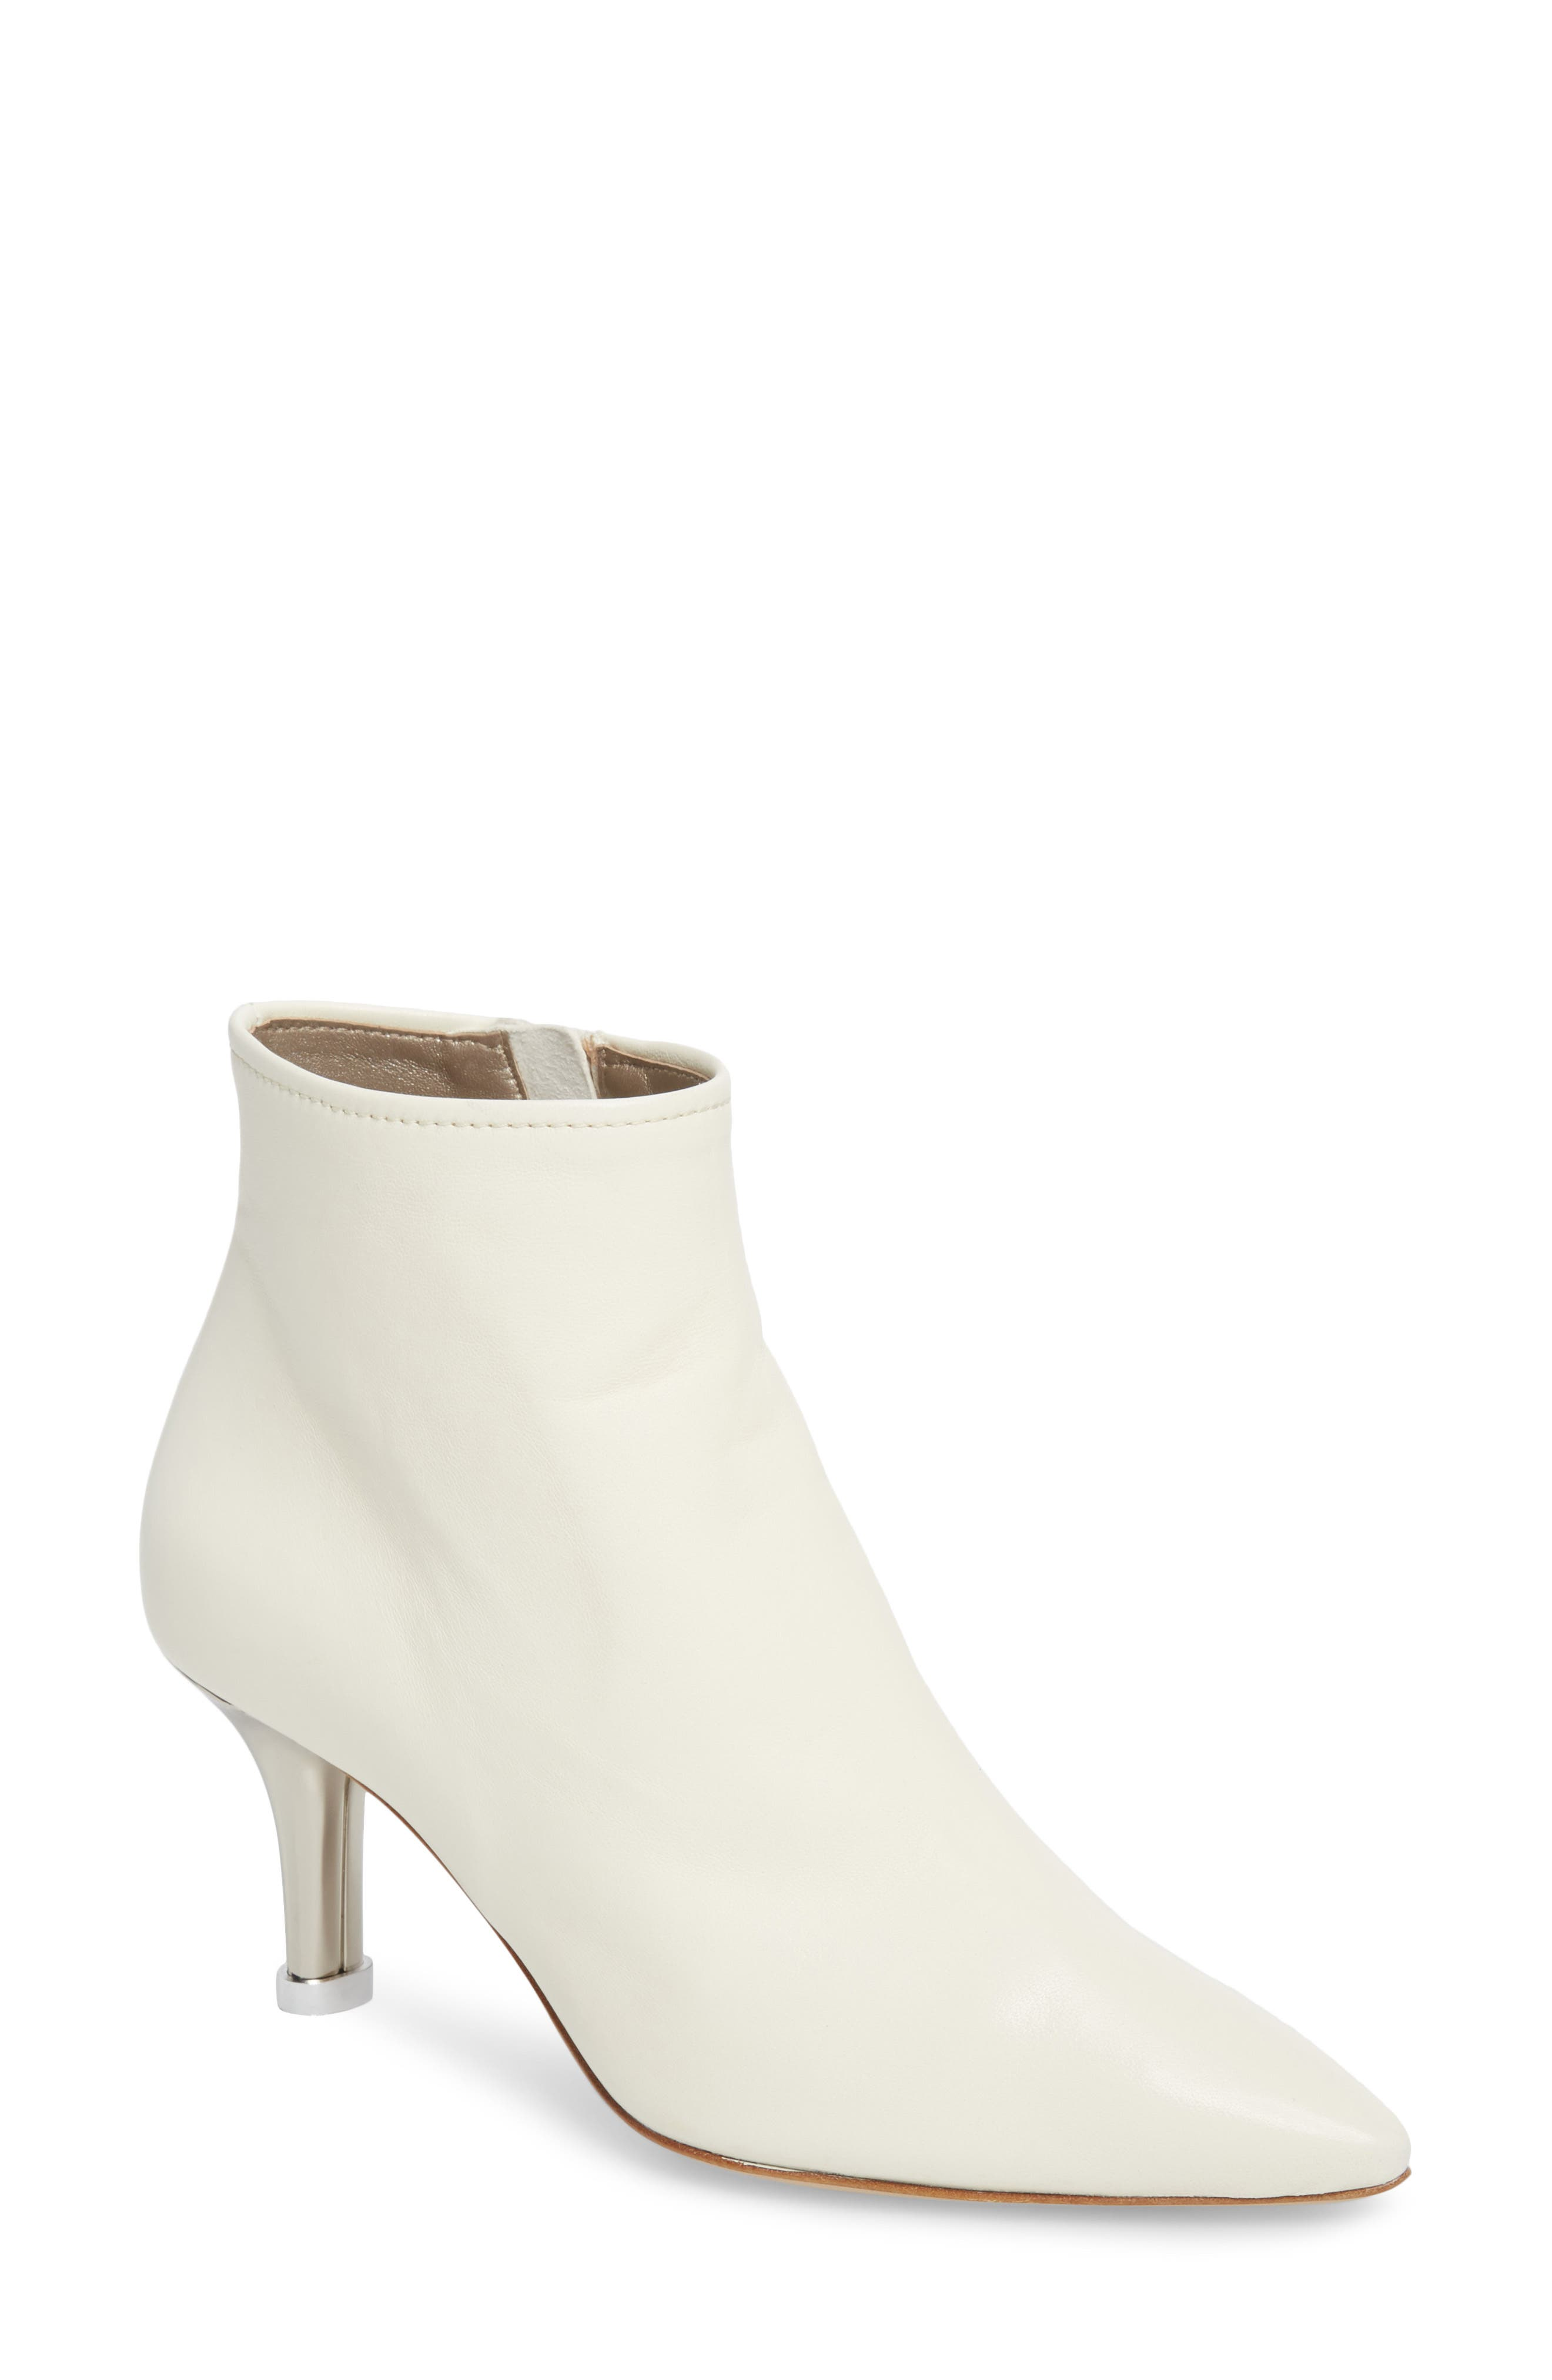 Summer Bootie,                         Main,                         color, OFF WHITE LEATHER